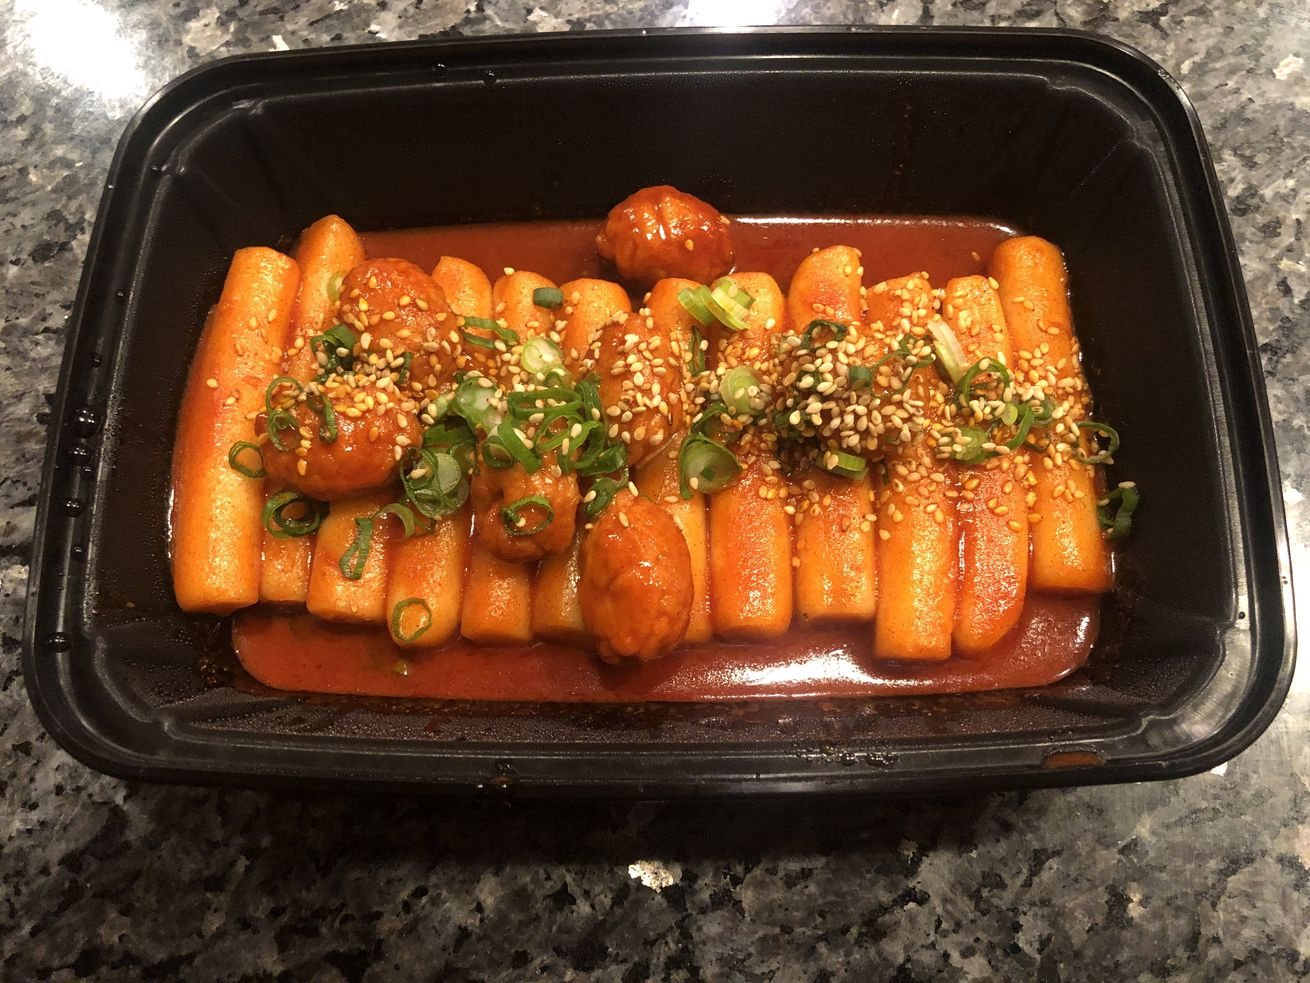 Korean rice cakes in red sauce.